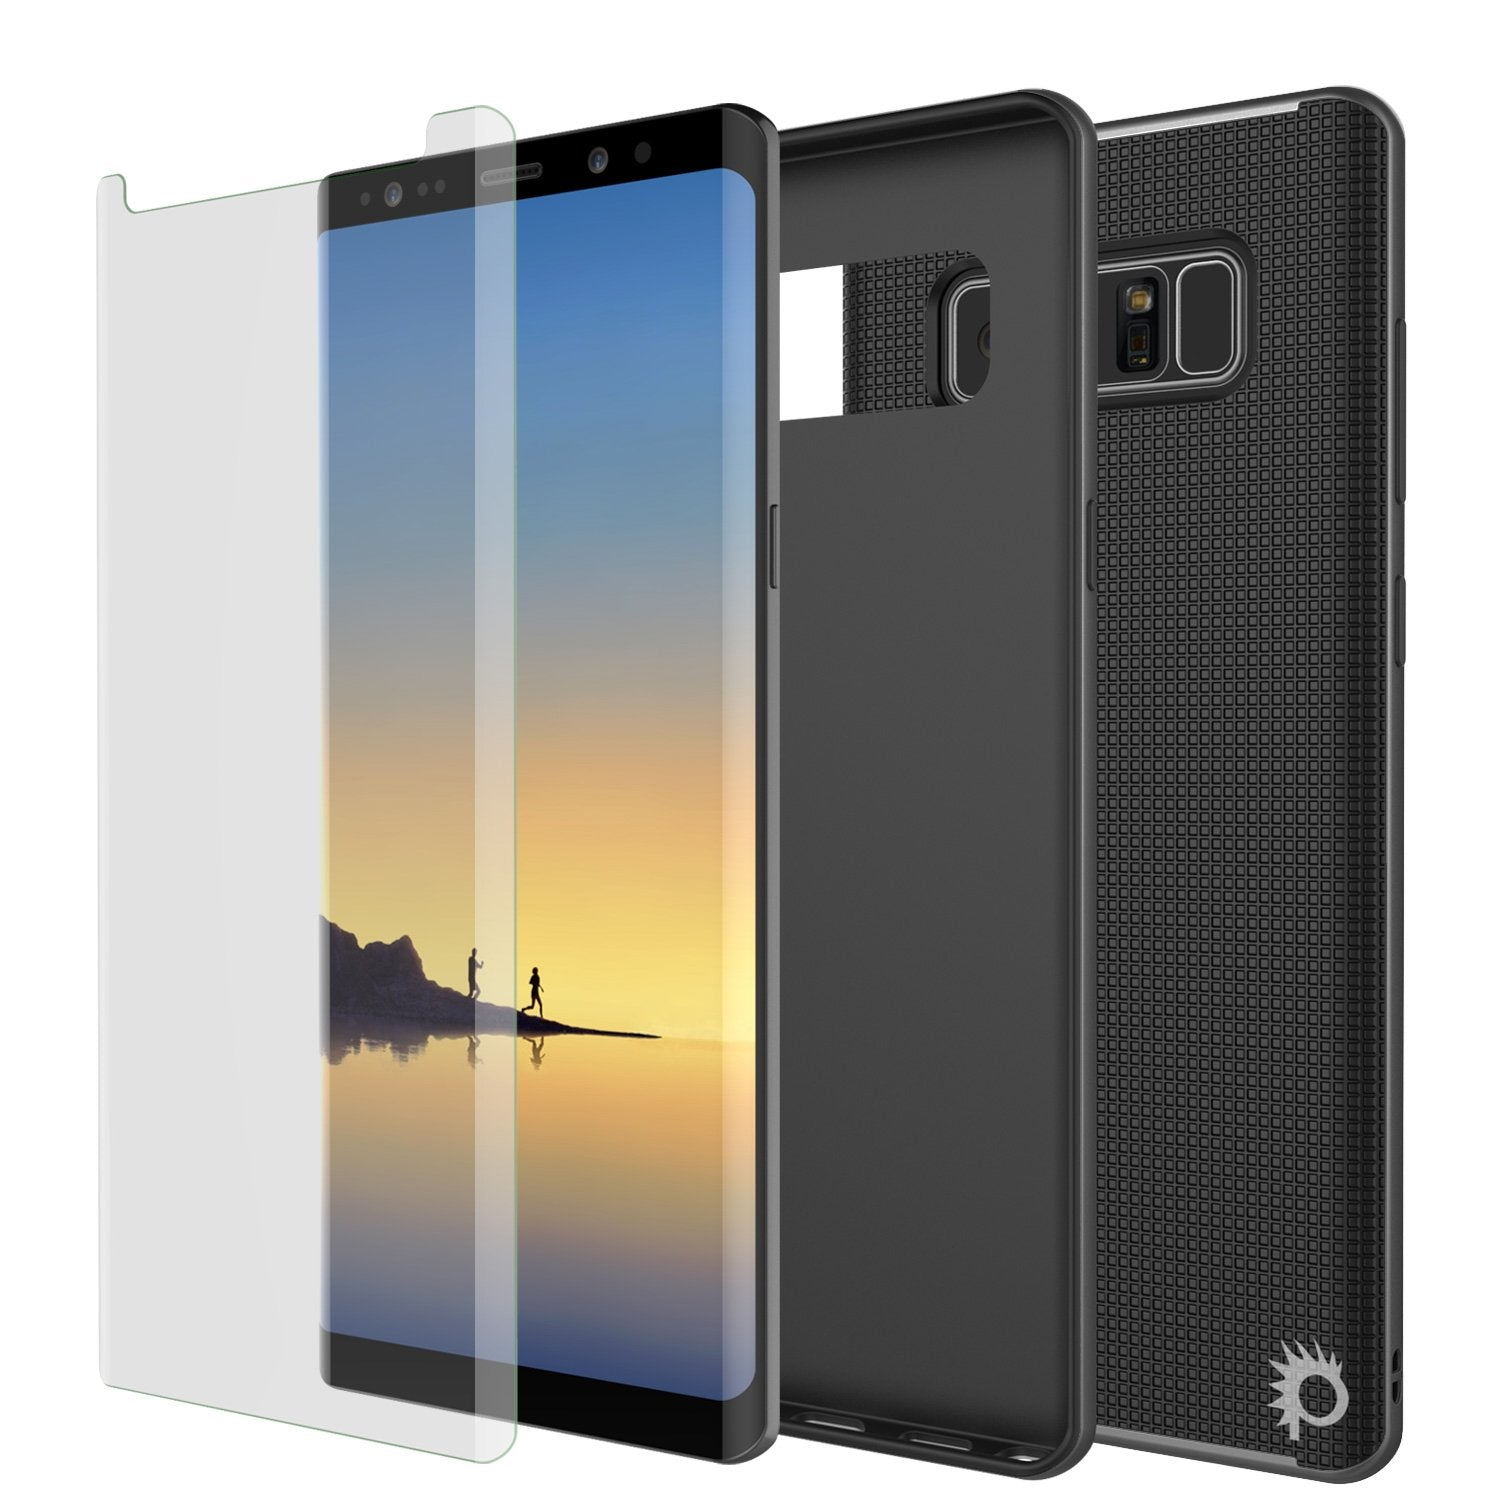 Galaxy Note 8 Case, PunkCase [Stealth Series] Hybrid 3-Piece Shockproof Dual Layer Cover [Non-Slip] [Soft TPU + PC Bumper] with PUNKSHIELD Screen Protector for Samsung Note 8 [Grey] - PunkCase NZ